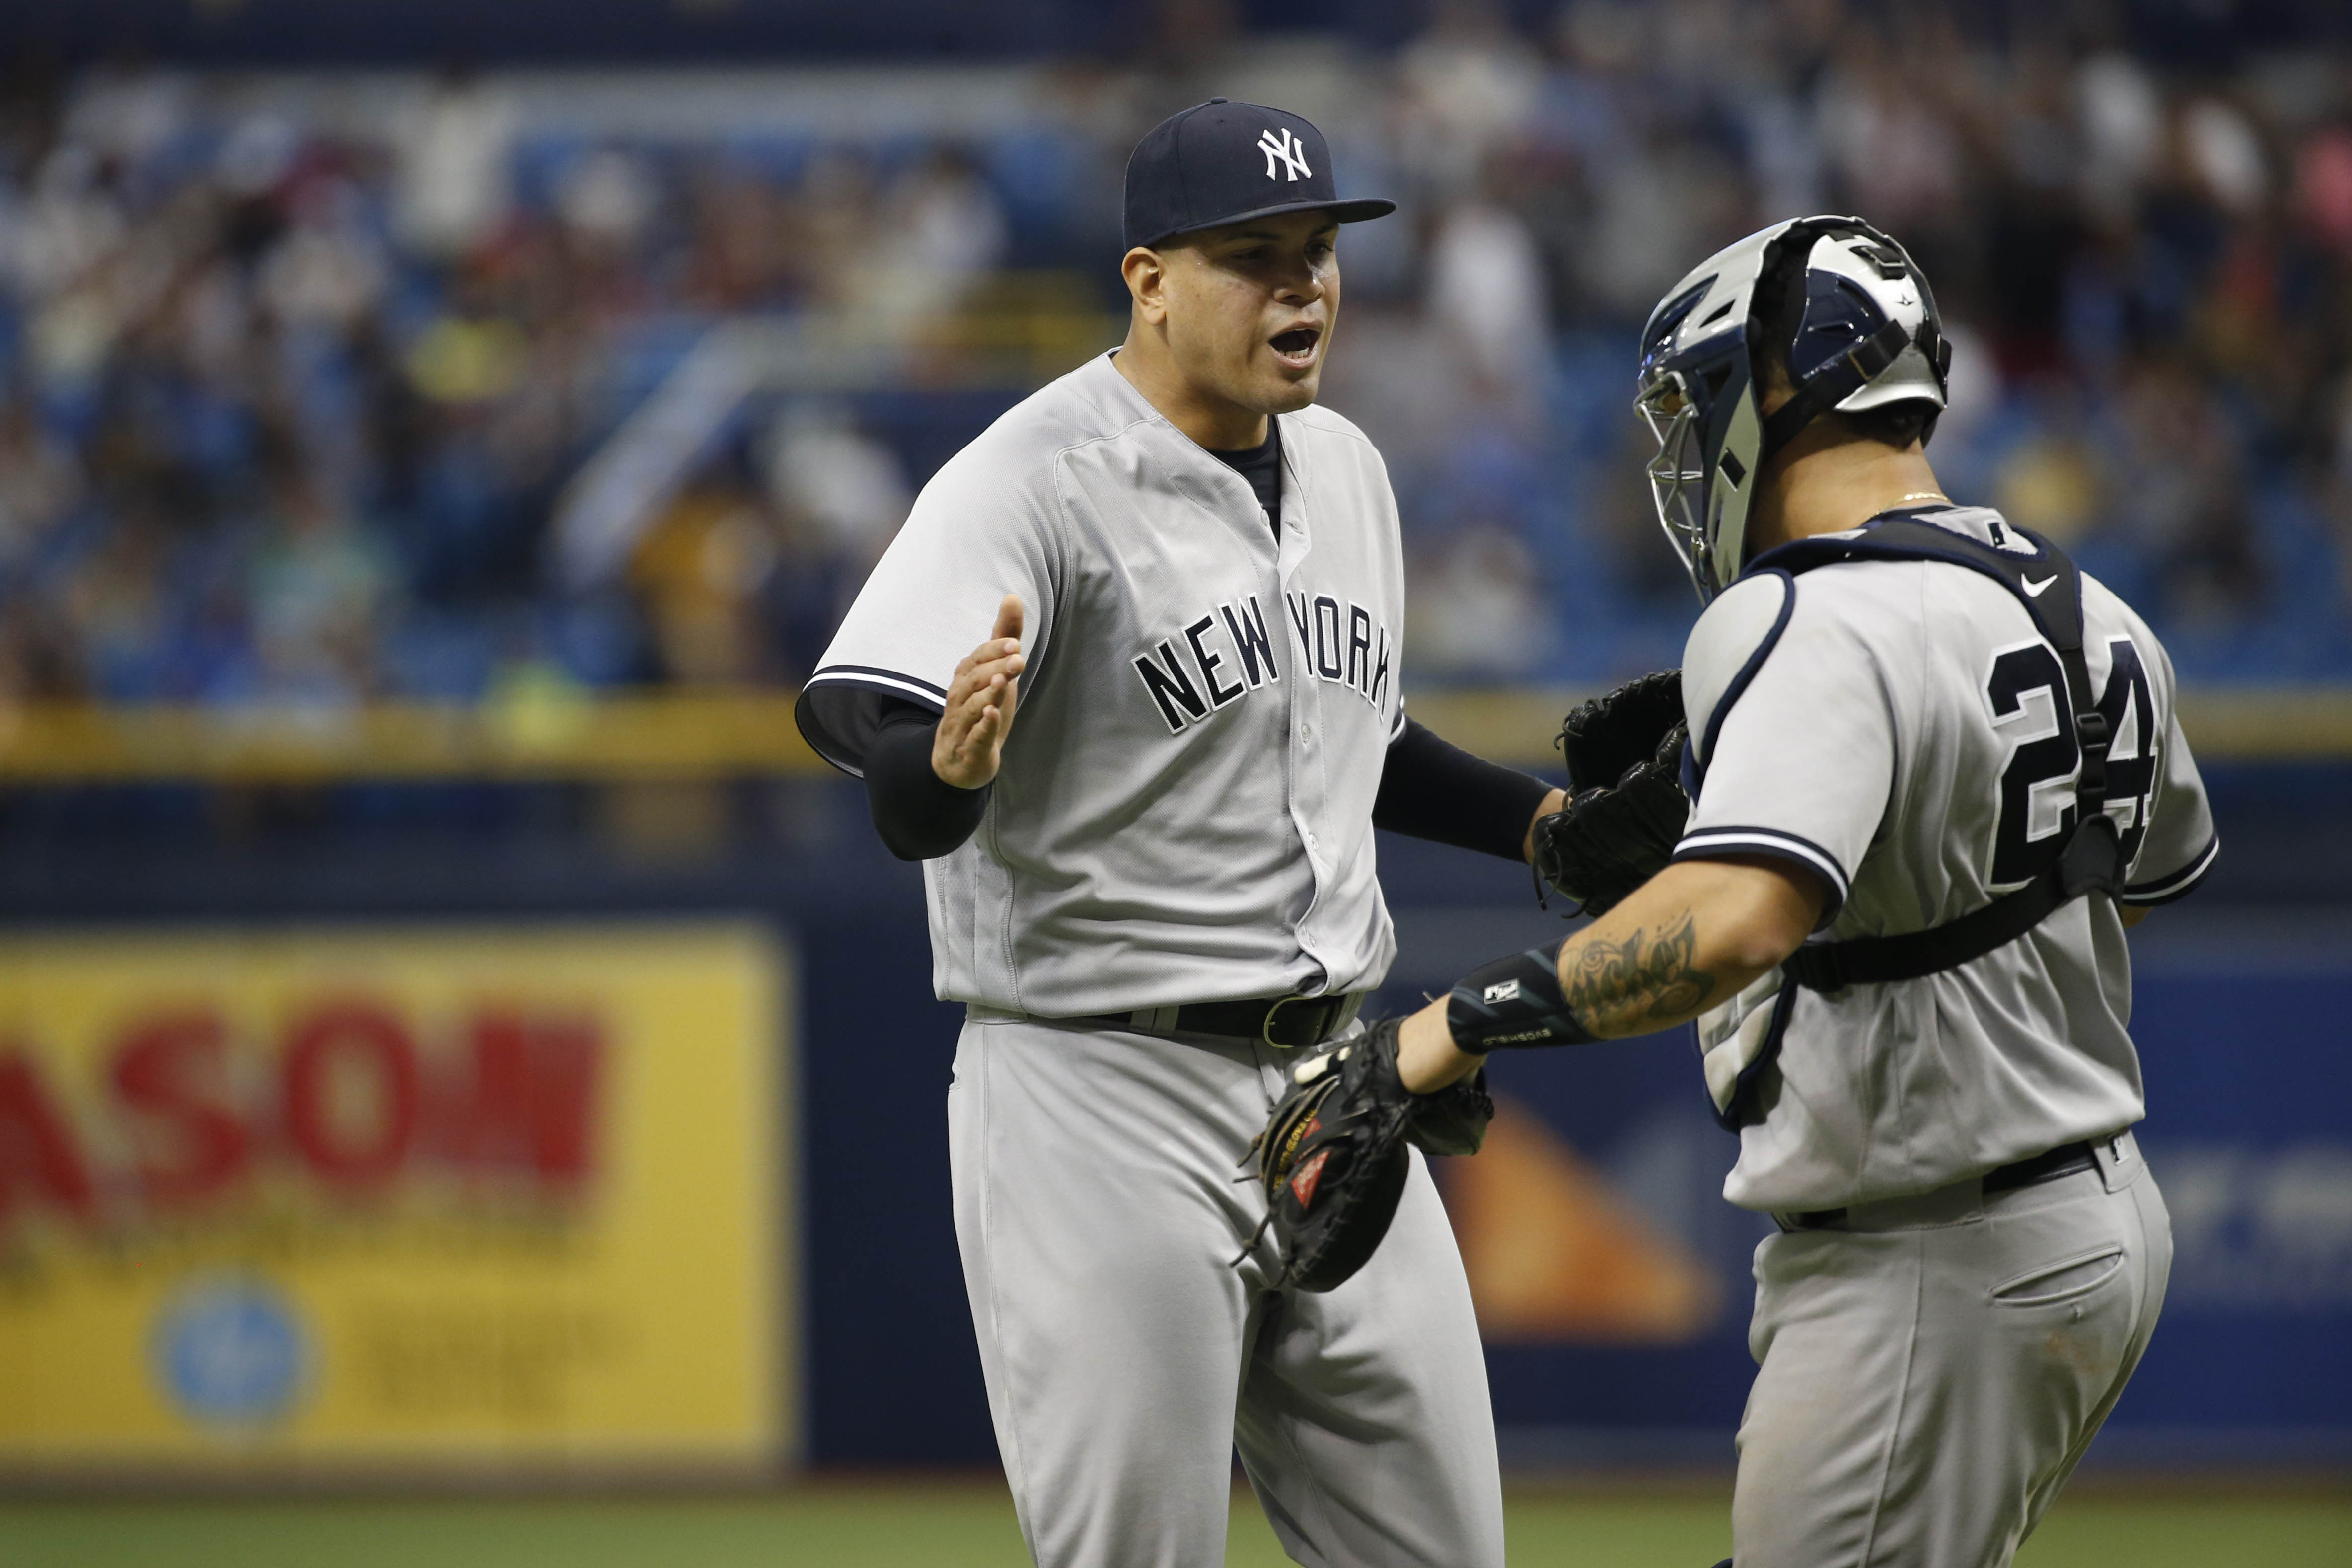 10068389-mlb-new-york-yankees-at-tampa-bay-rays